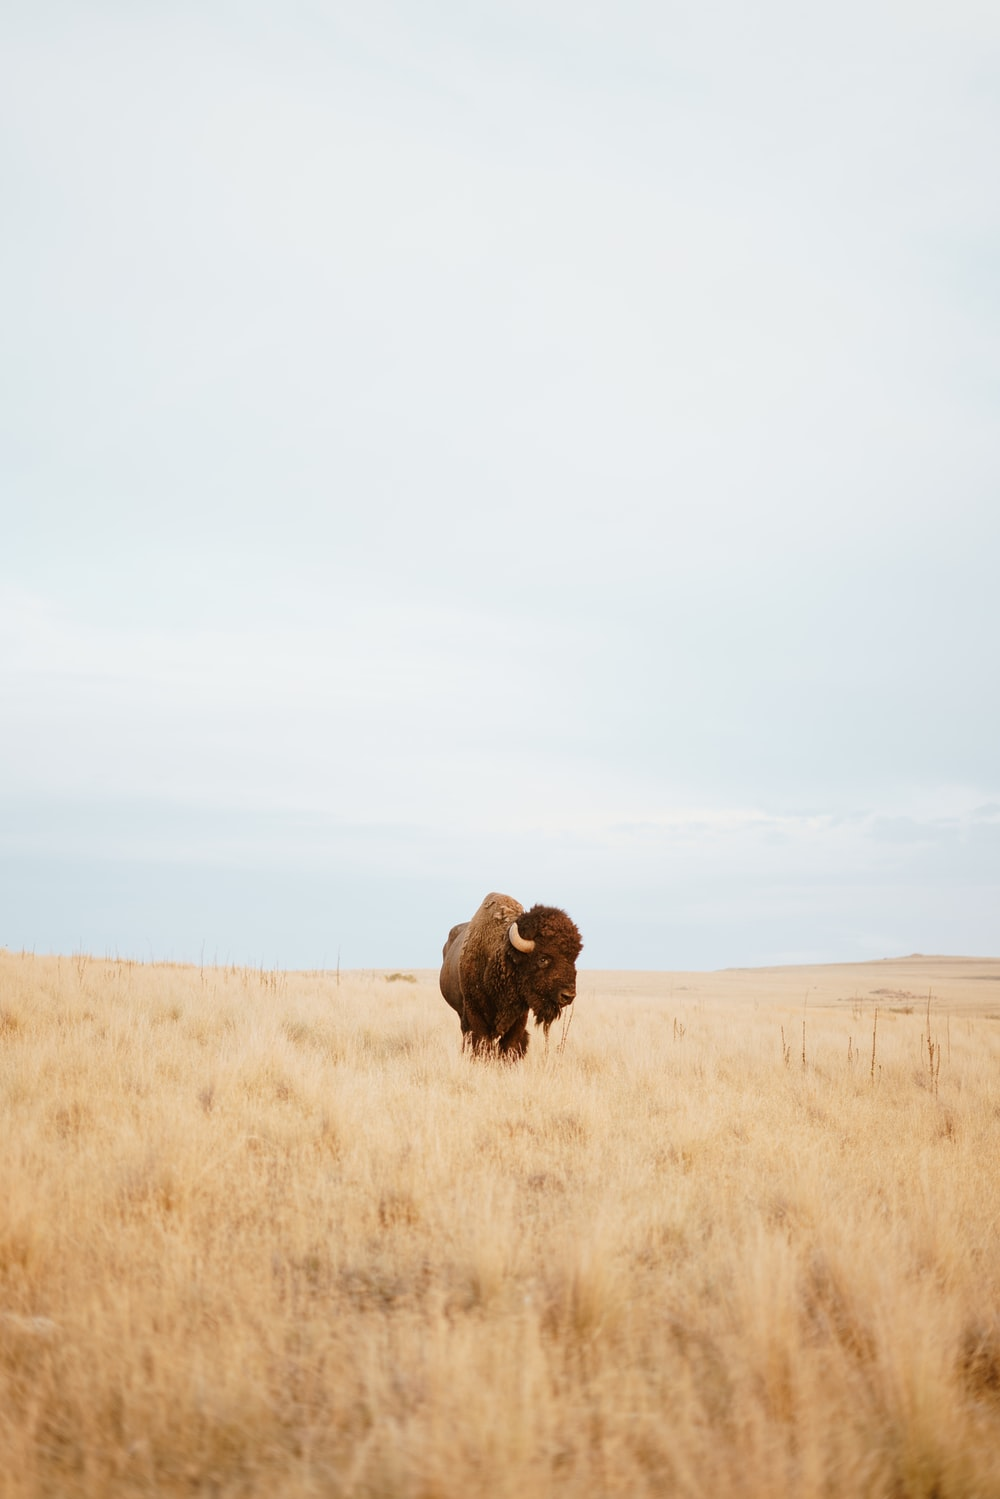 bison standing on brown field during daytime